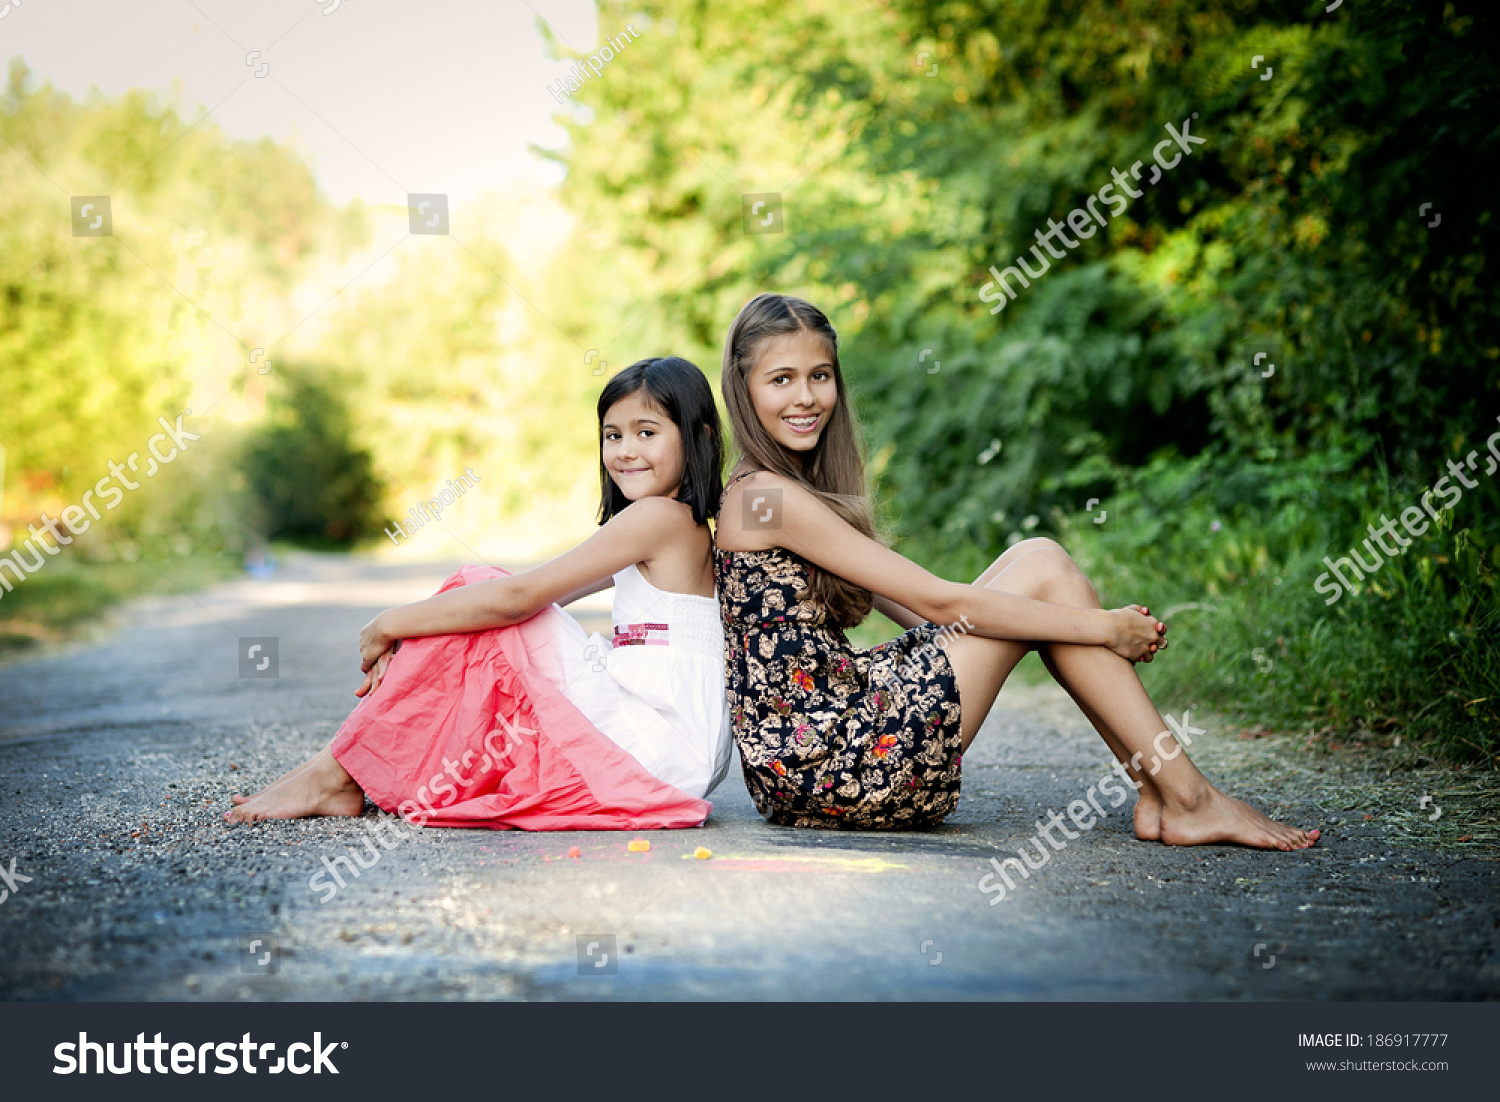 https://image.shutterstock.com/shutterstock/photos/186917777/display_1500/stock-photo-two-sisters-laughing-and-playing-with-chalks-on-pavement-in-green-sunny-park-186917777.jpg